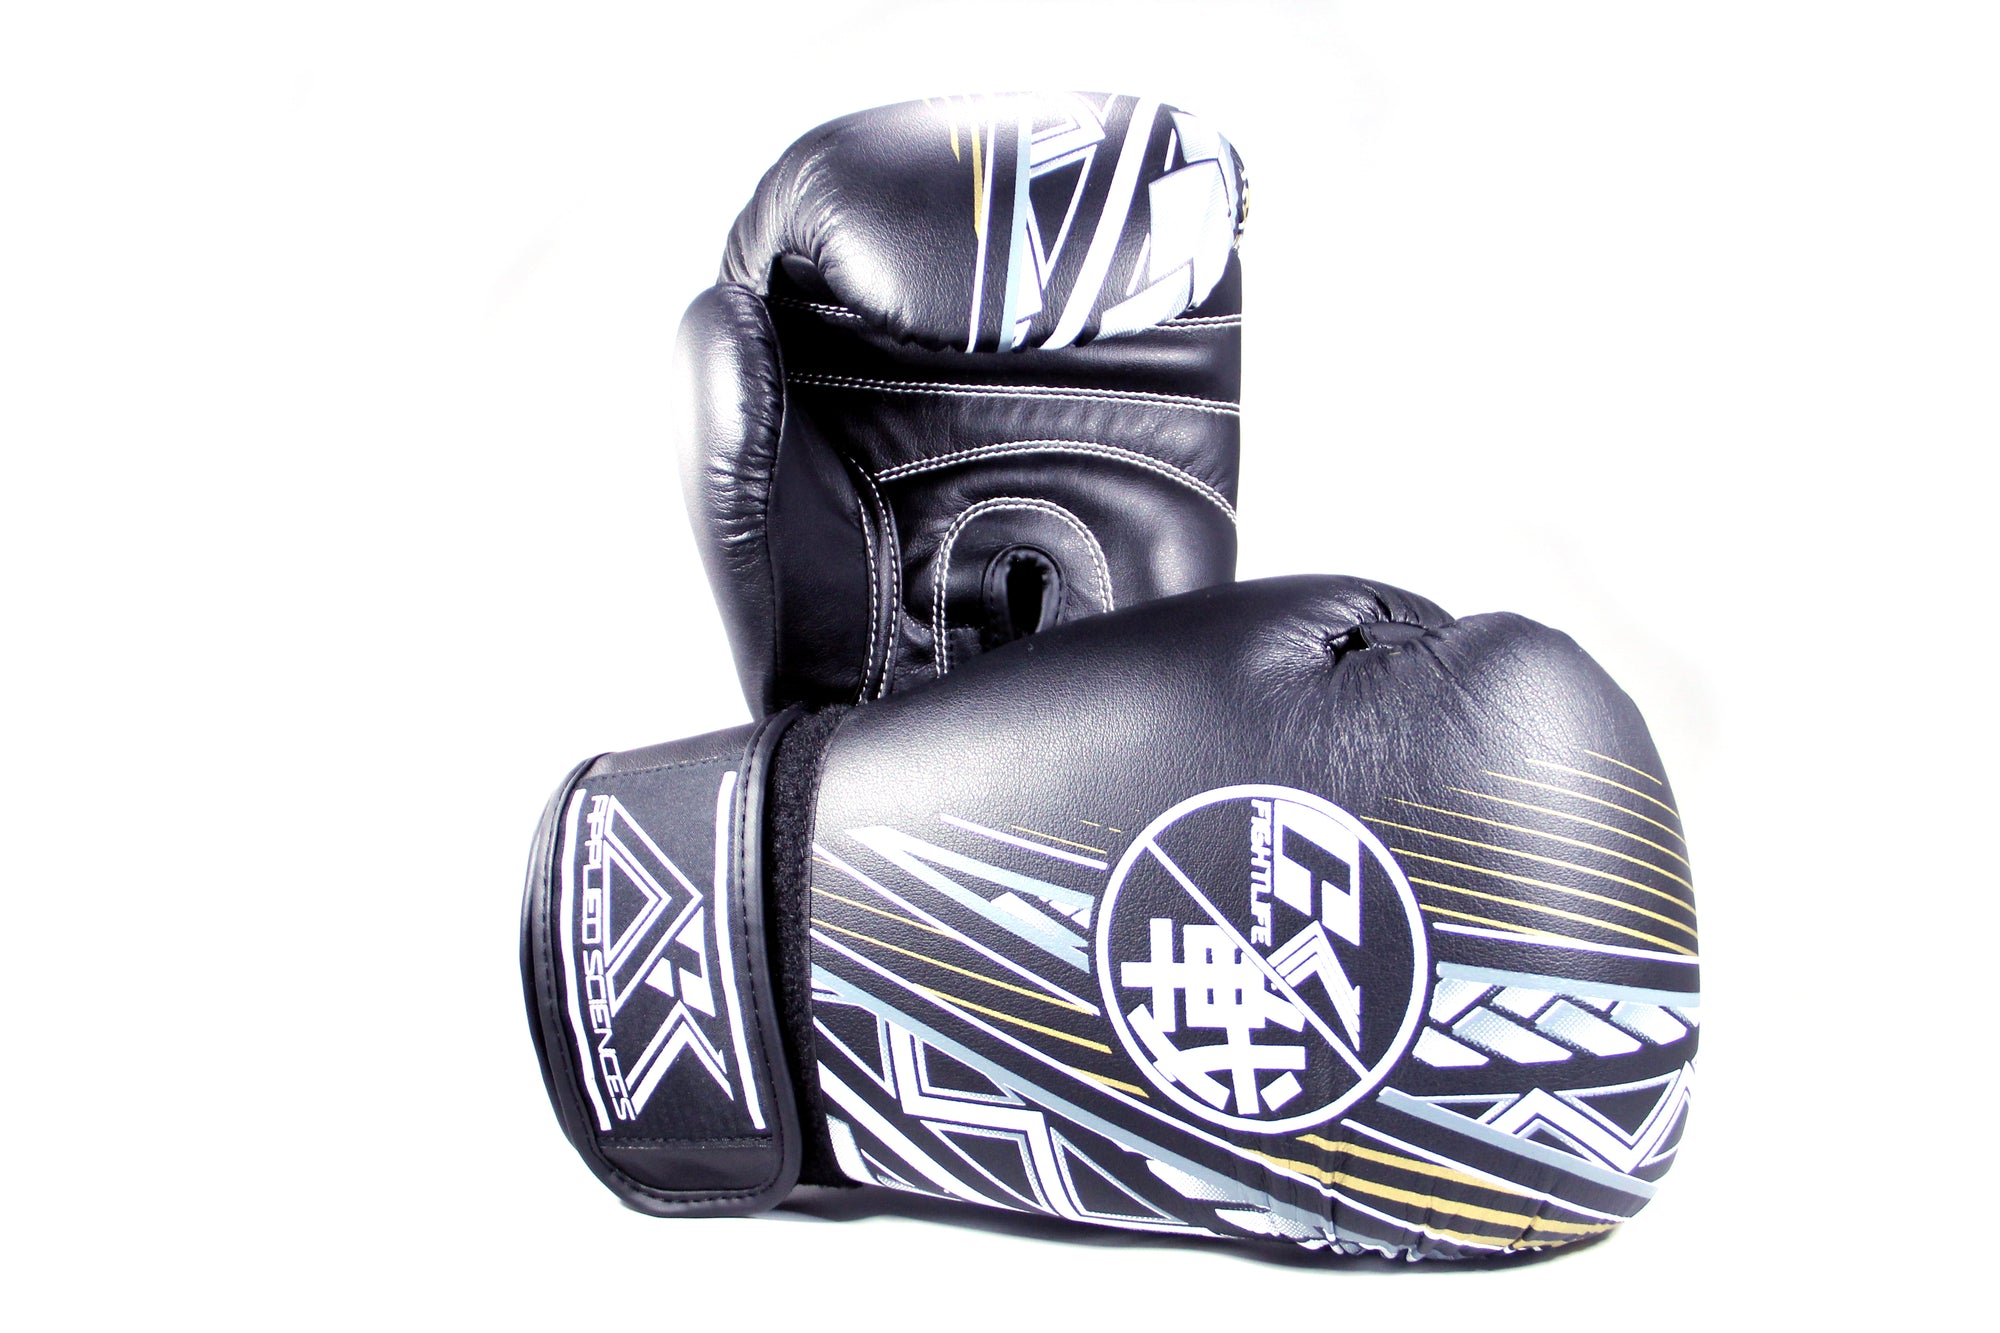 CK CKollide Series - Pro Boxing Gloves